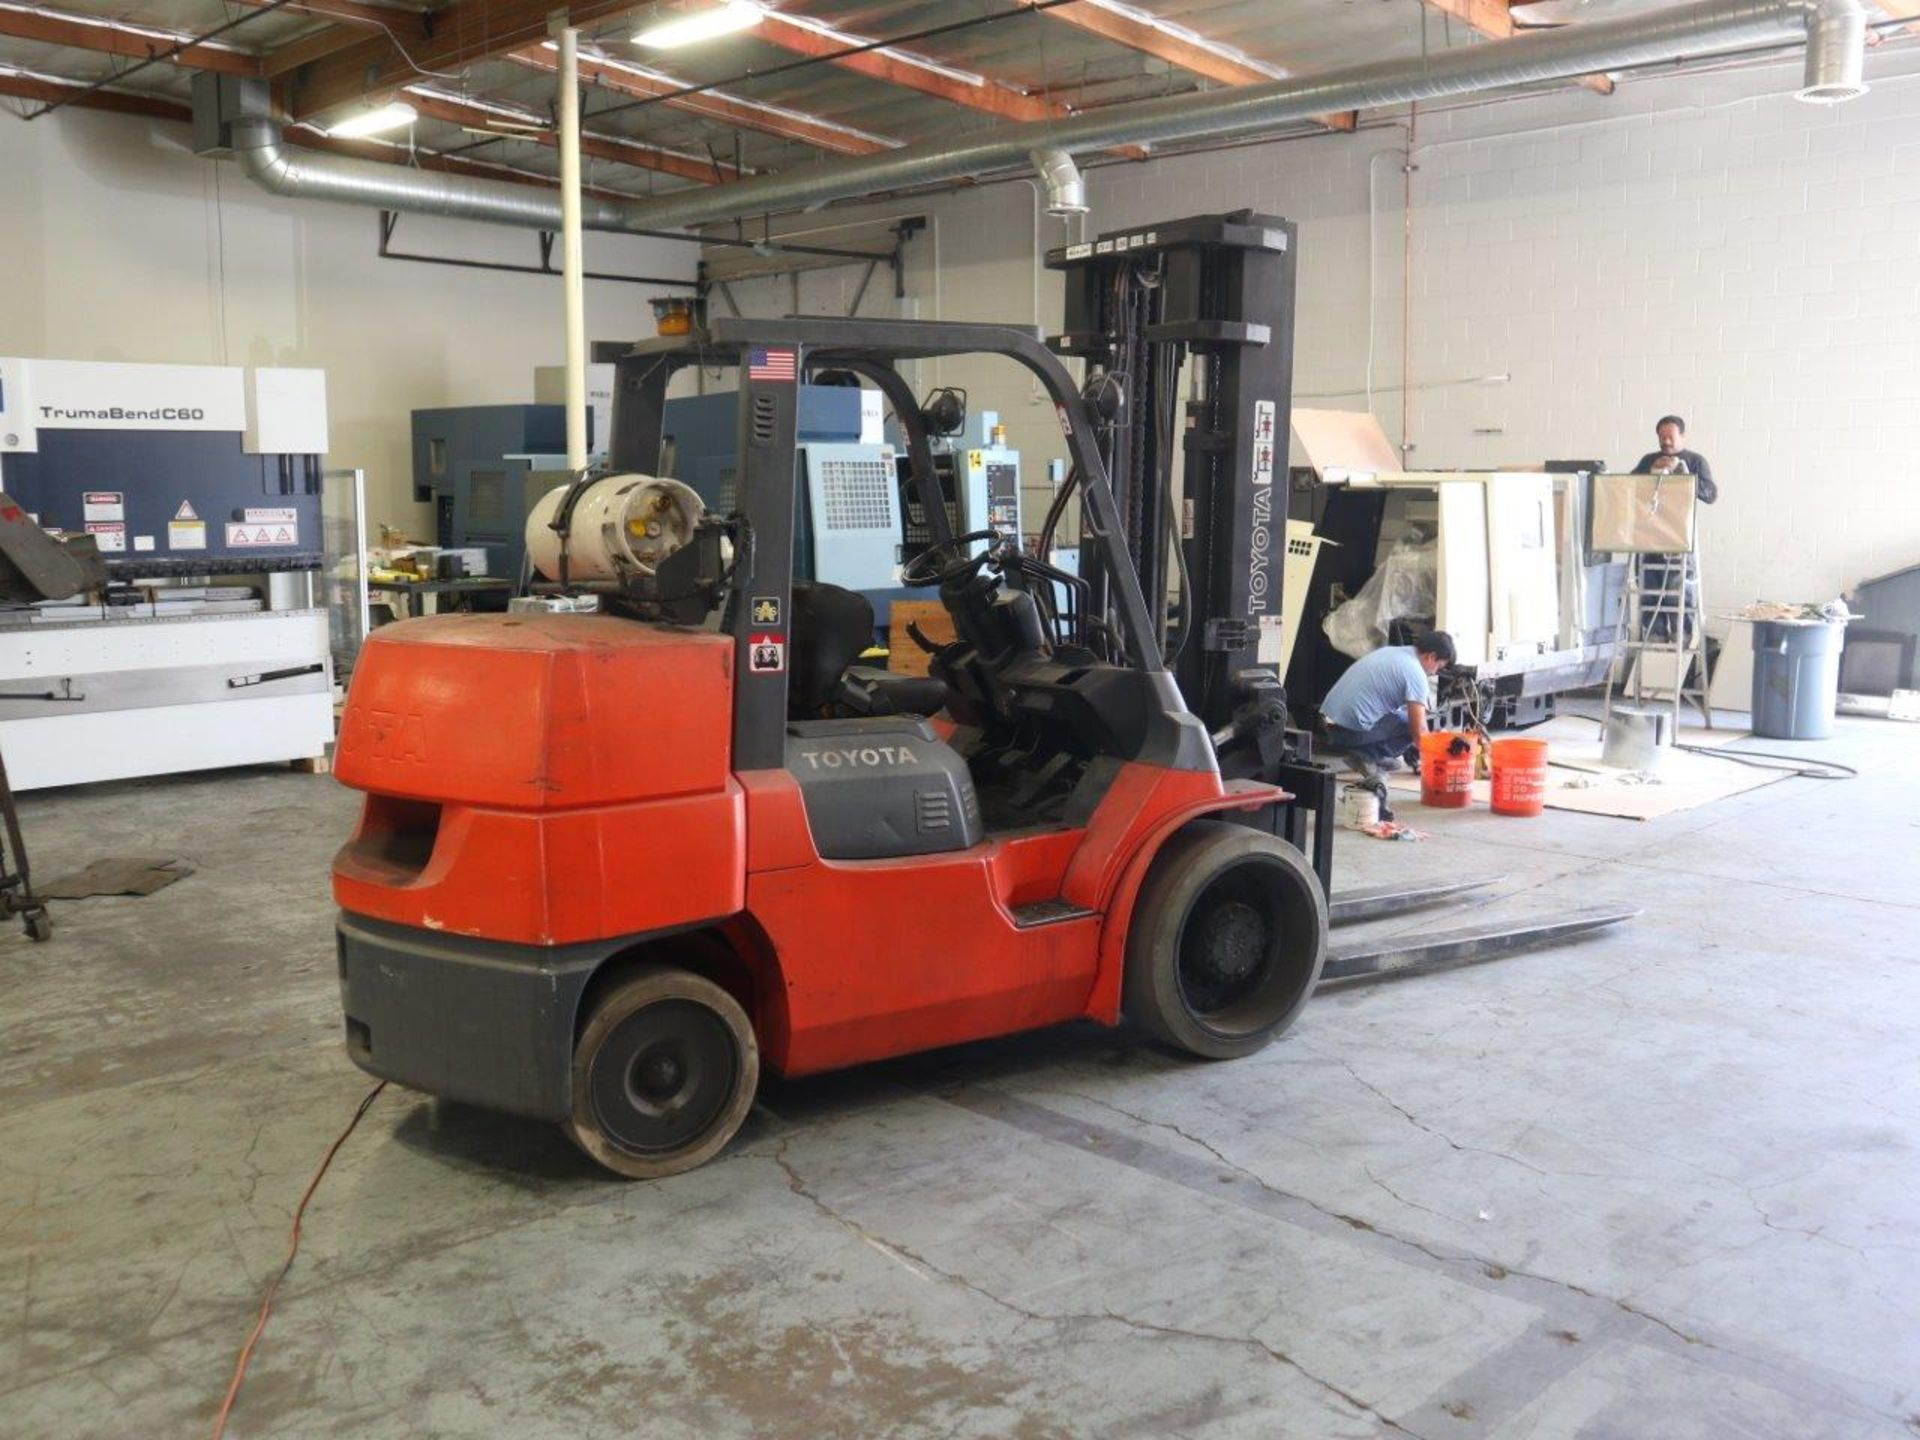 TOYOTA FORKLIFT 15,500 LBS LIFT CAPACITY 7FGCU70 - Image 2 of 8